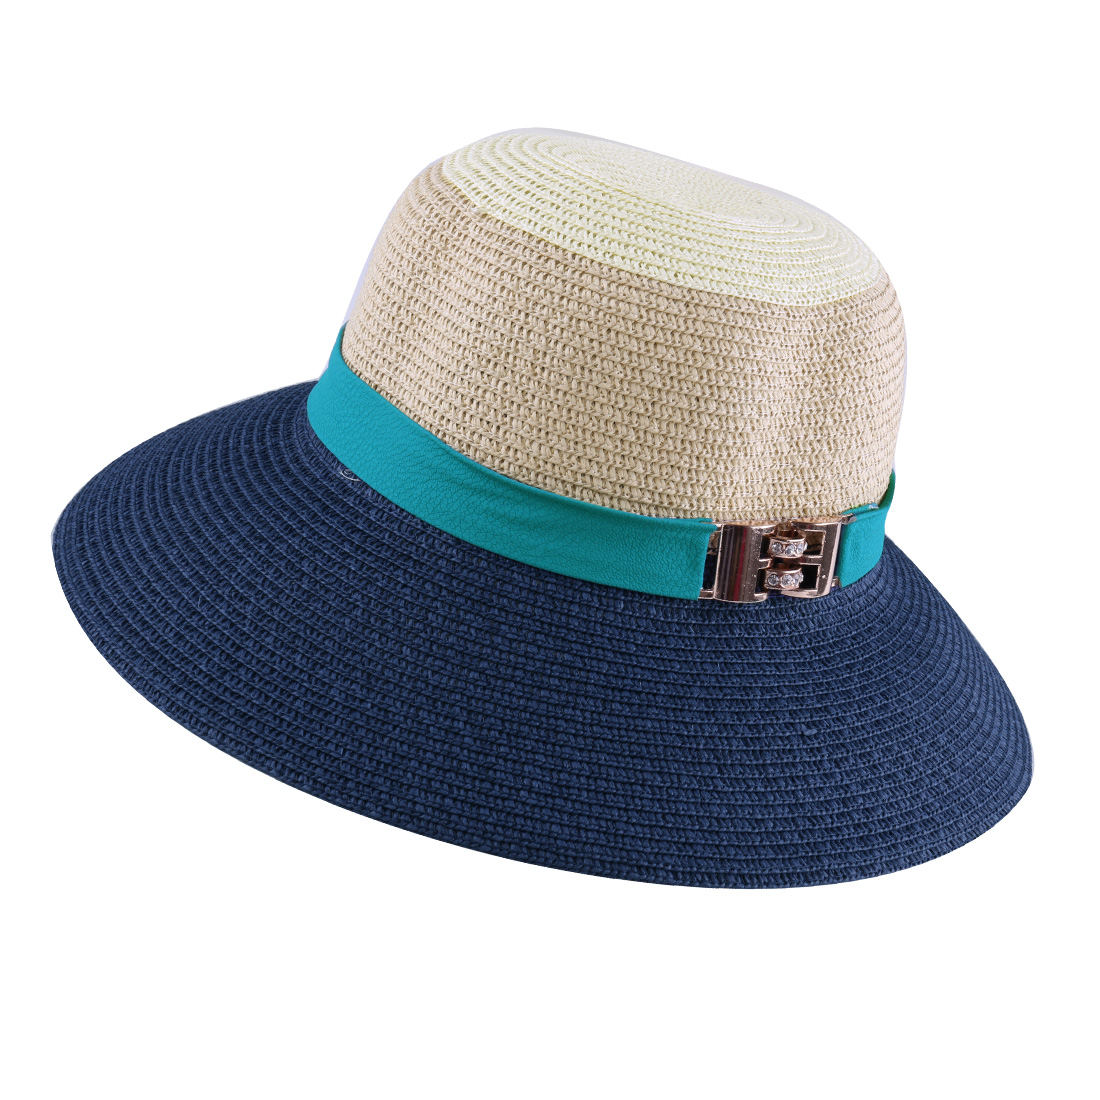 Ladies Wide Brim Stitching Straw Color Block Beach Sun Hat Navy Blue Beige